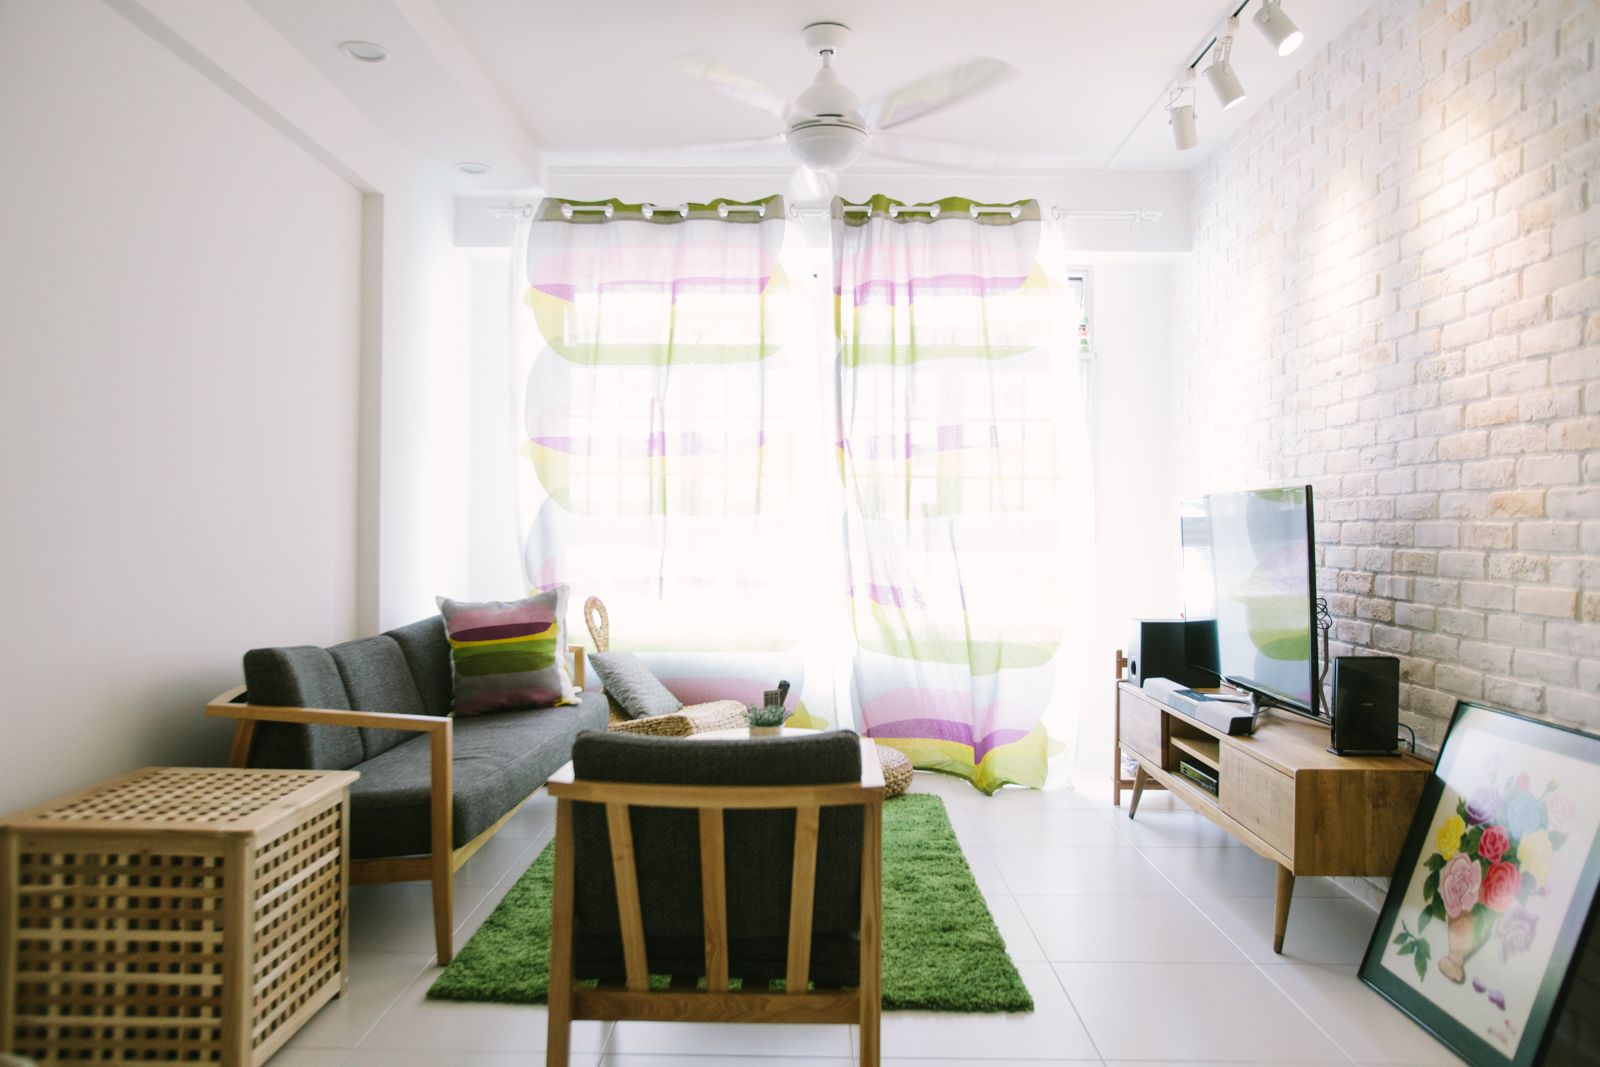 Yishun Ave 11 4Room Hdb  Z L Construction Pte Ltd  Home And Endearing Hdb 4 Room Living Room Design Design Decoration